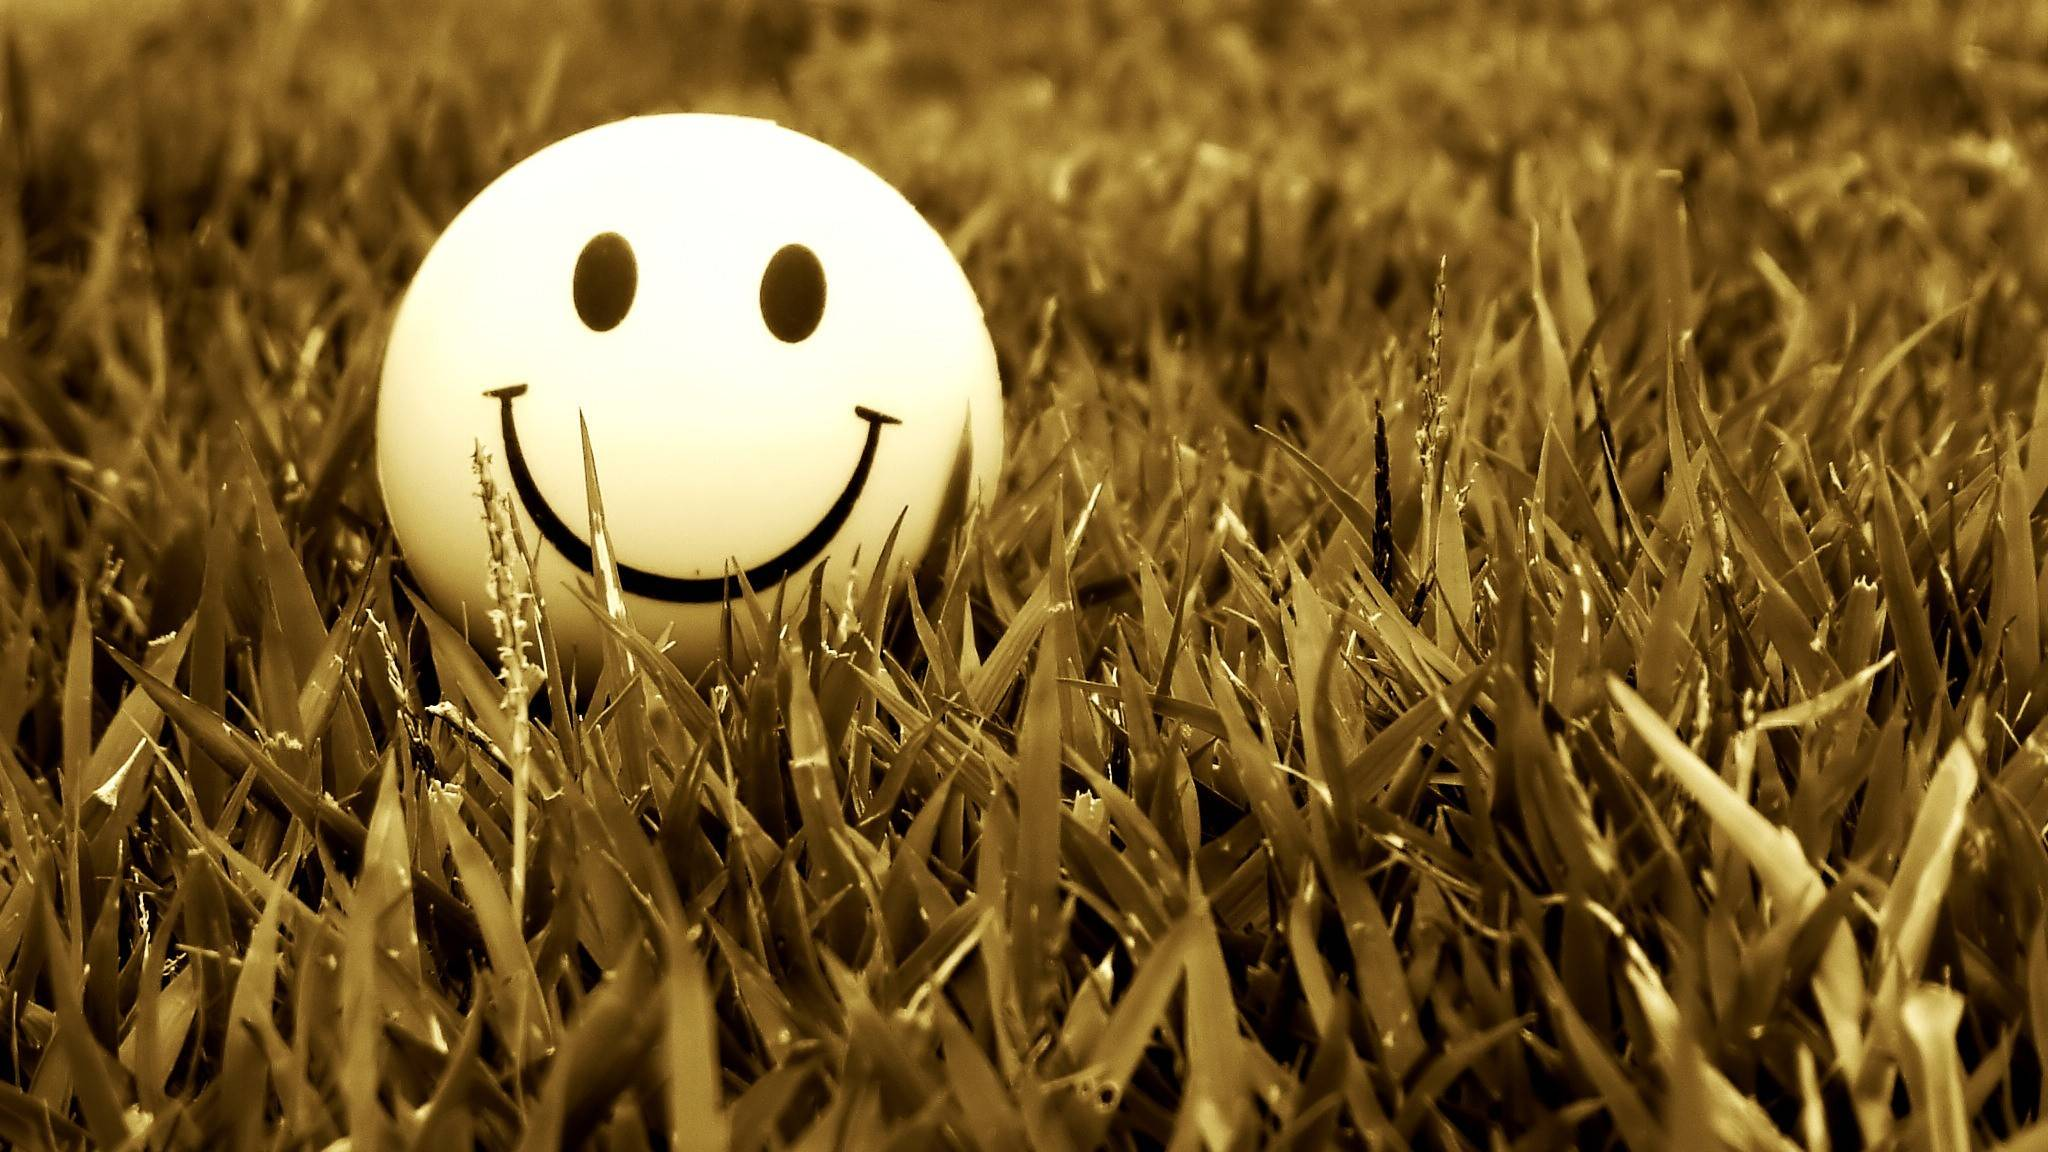 Grass Smiling 2048 1152 Wallpaper 2158365 2048x1152